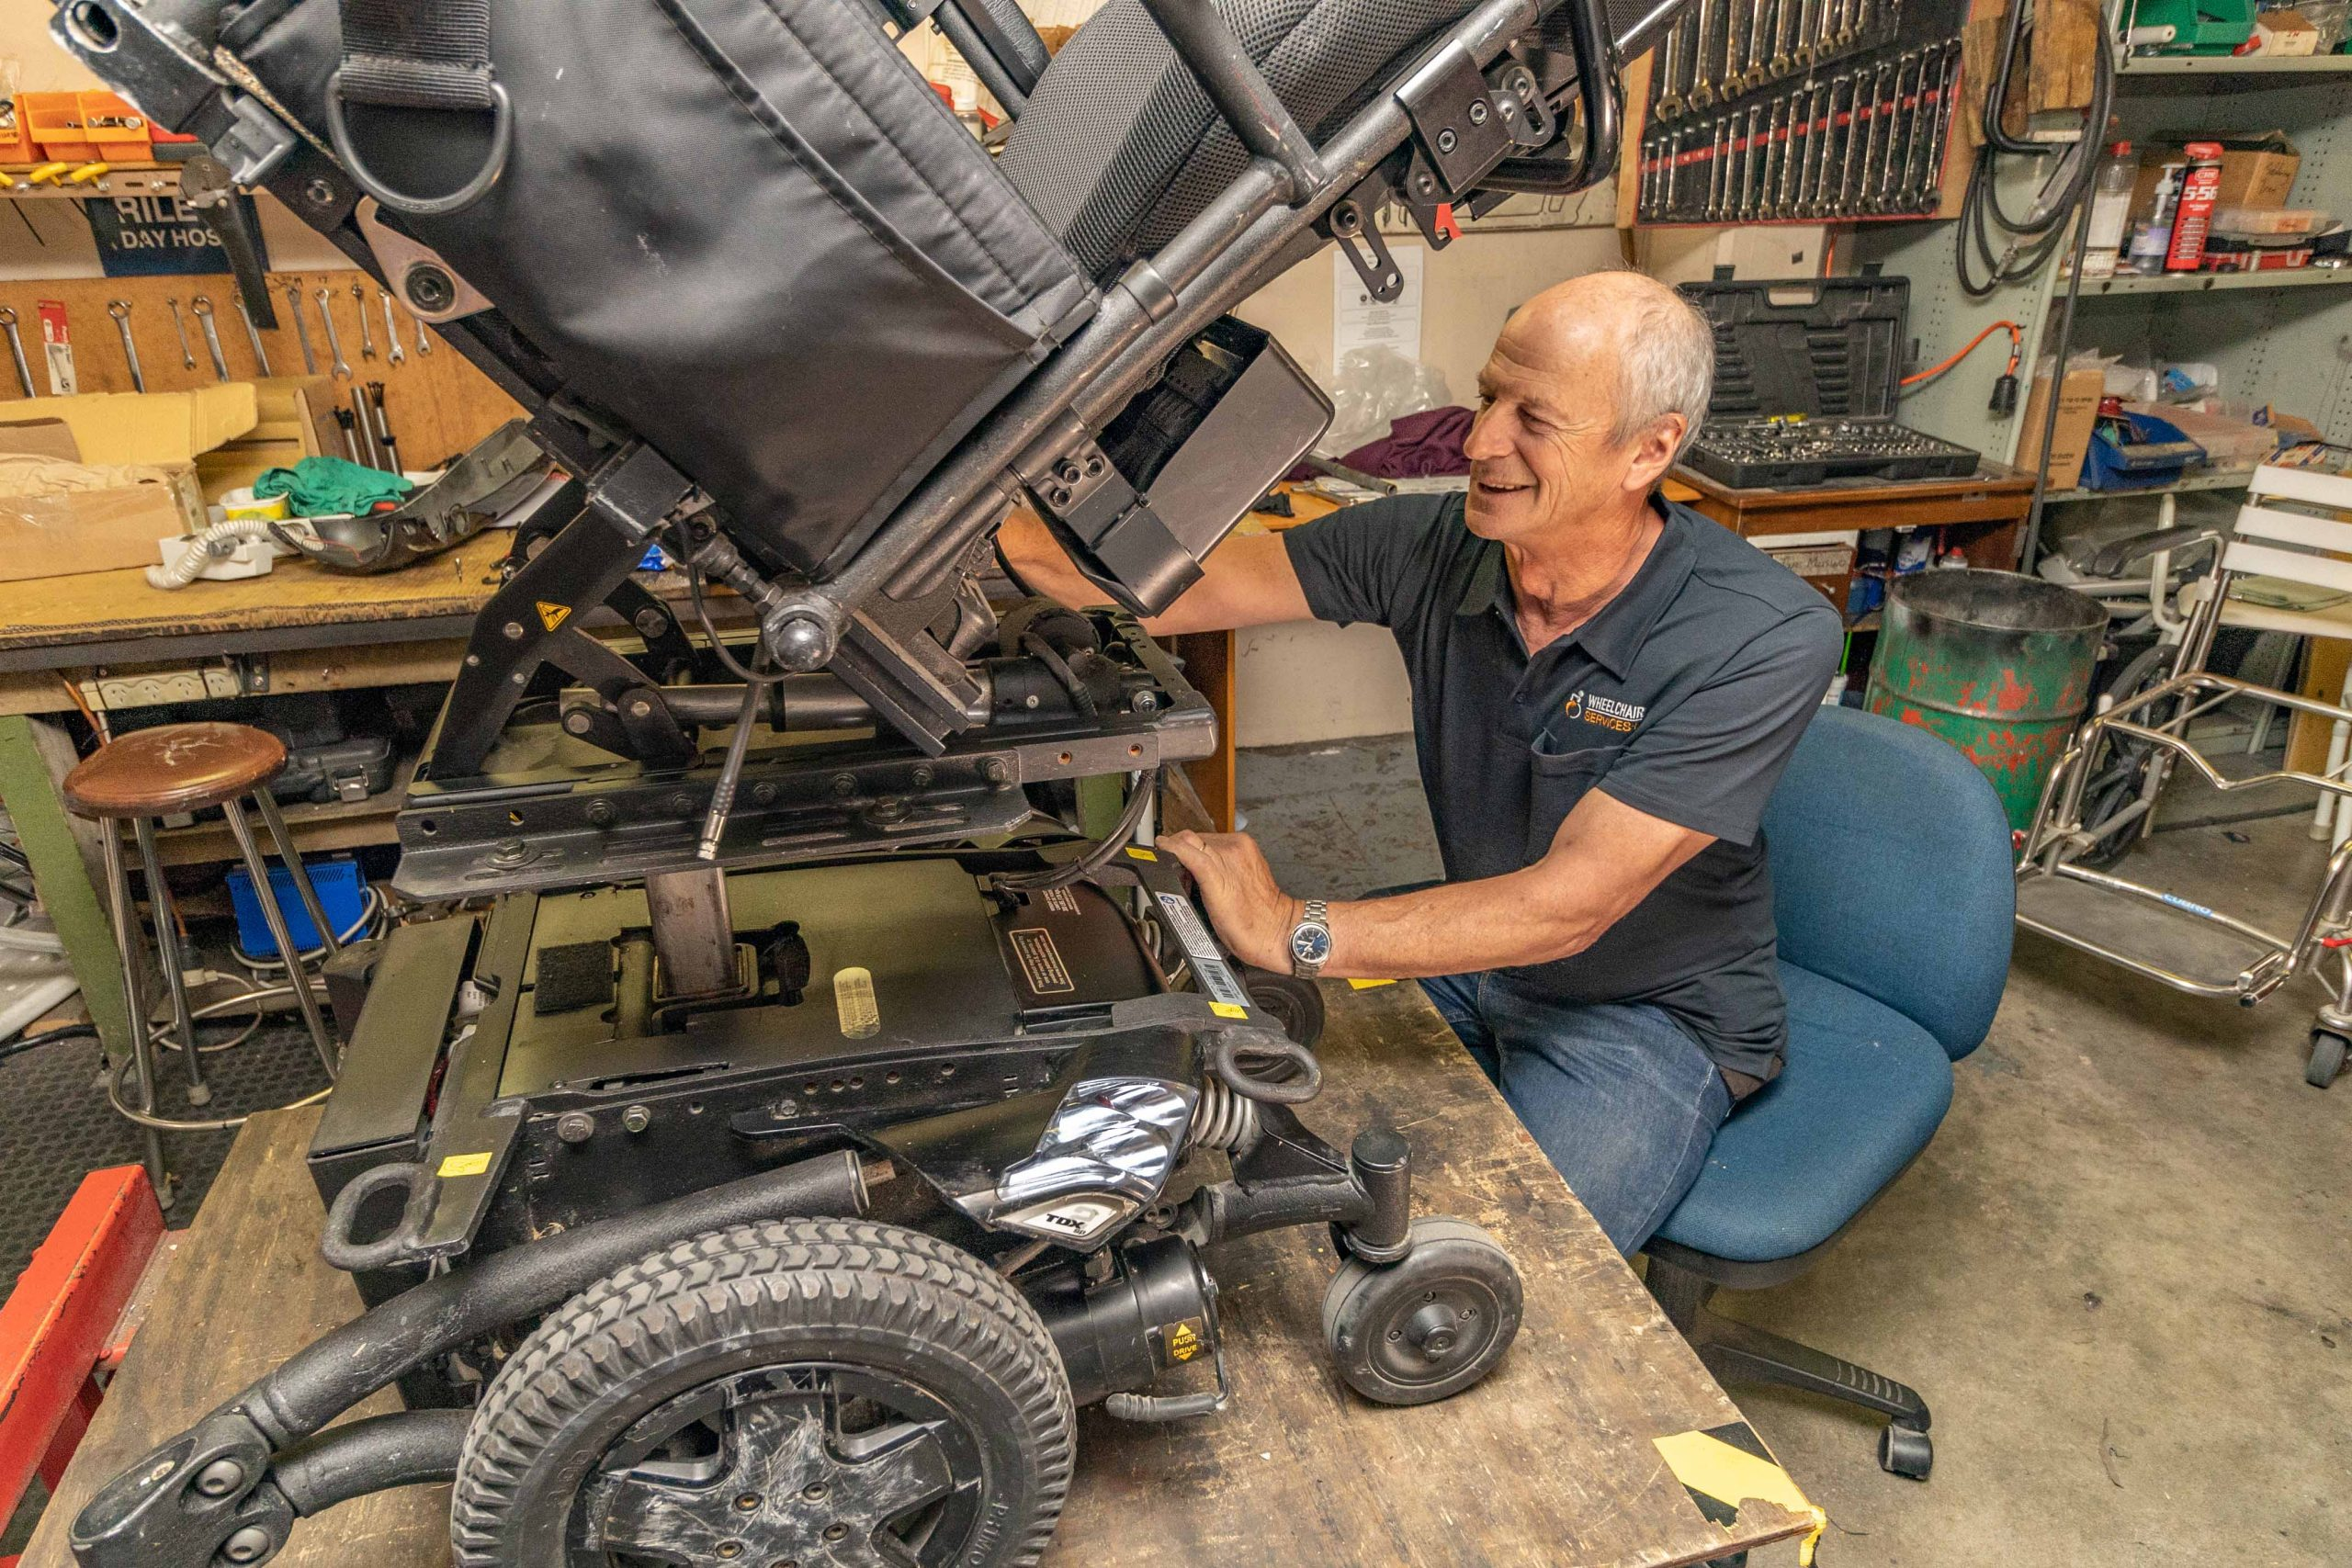 man on chair doing a repair to a motorised wheelchair on a work bench